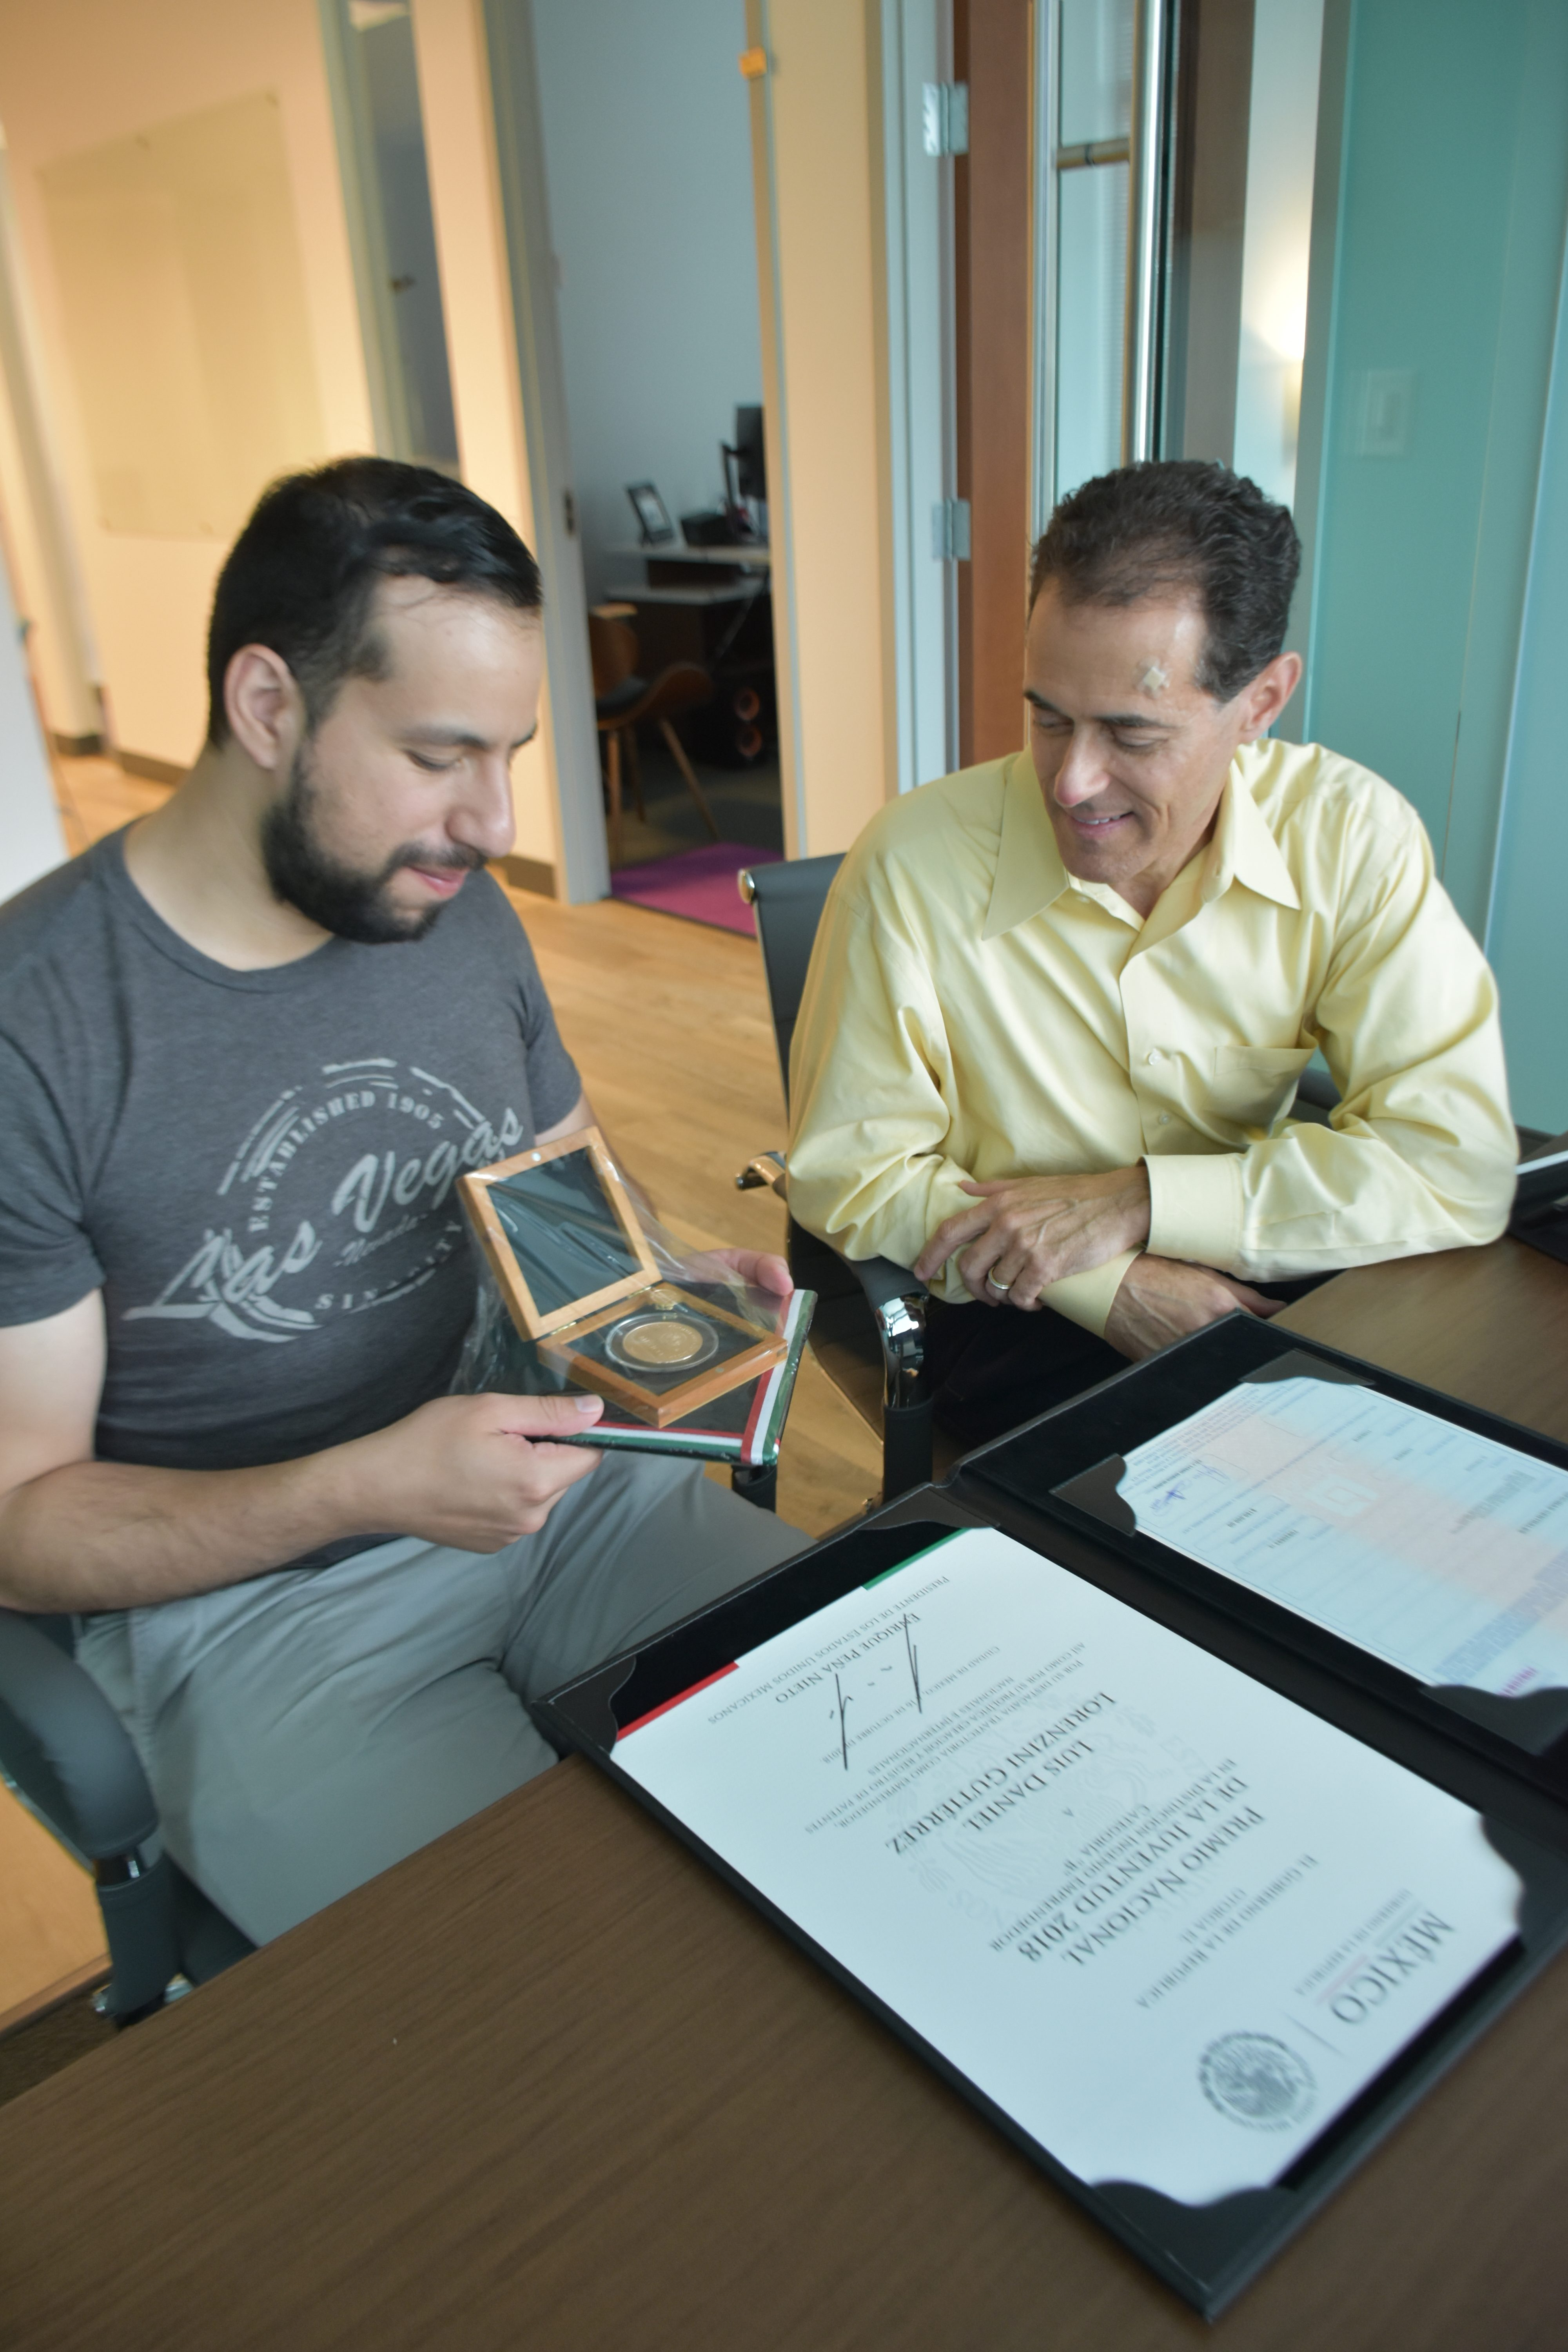 Daniel Lorenzini (left), founder of EMCOOL, shows Jonathan Goldman, a principal in Georgia Tech's VentureLab program, his entrepreneurship award he received from the Mexican government for his work in co-founding a startup in that country. (Péralte C. Paul)